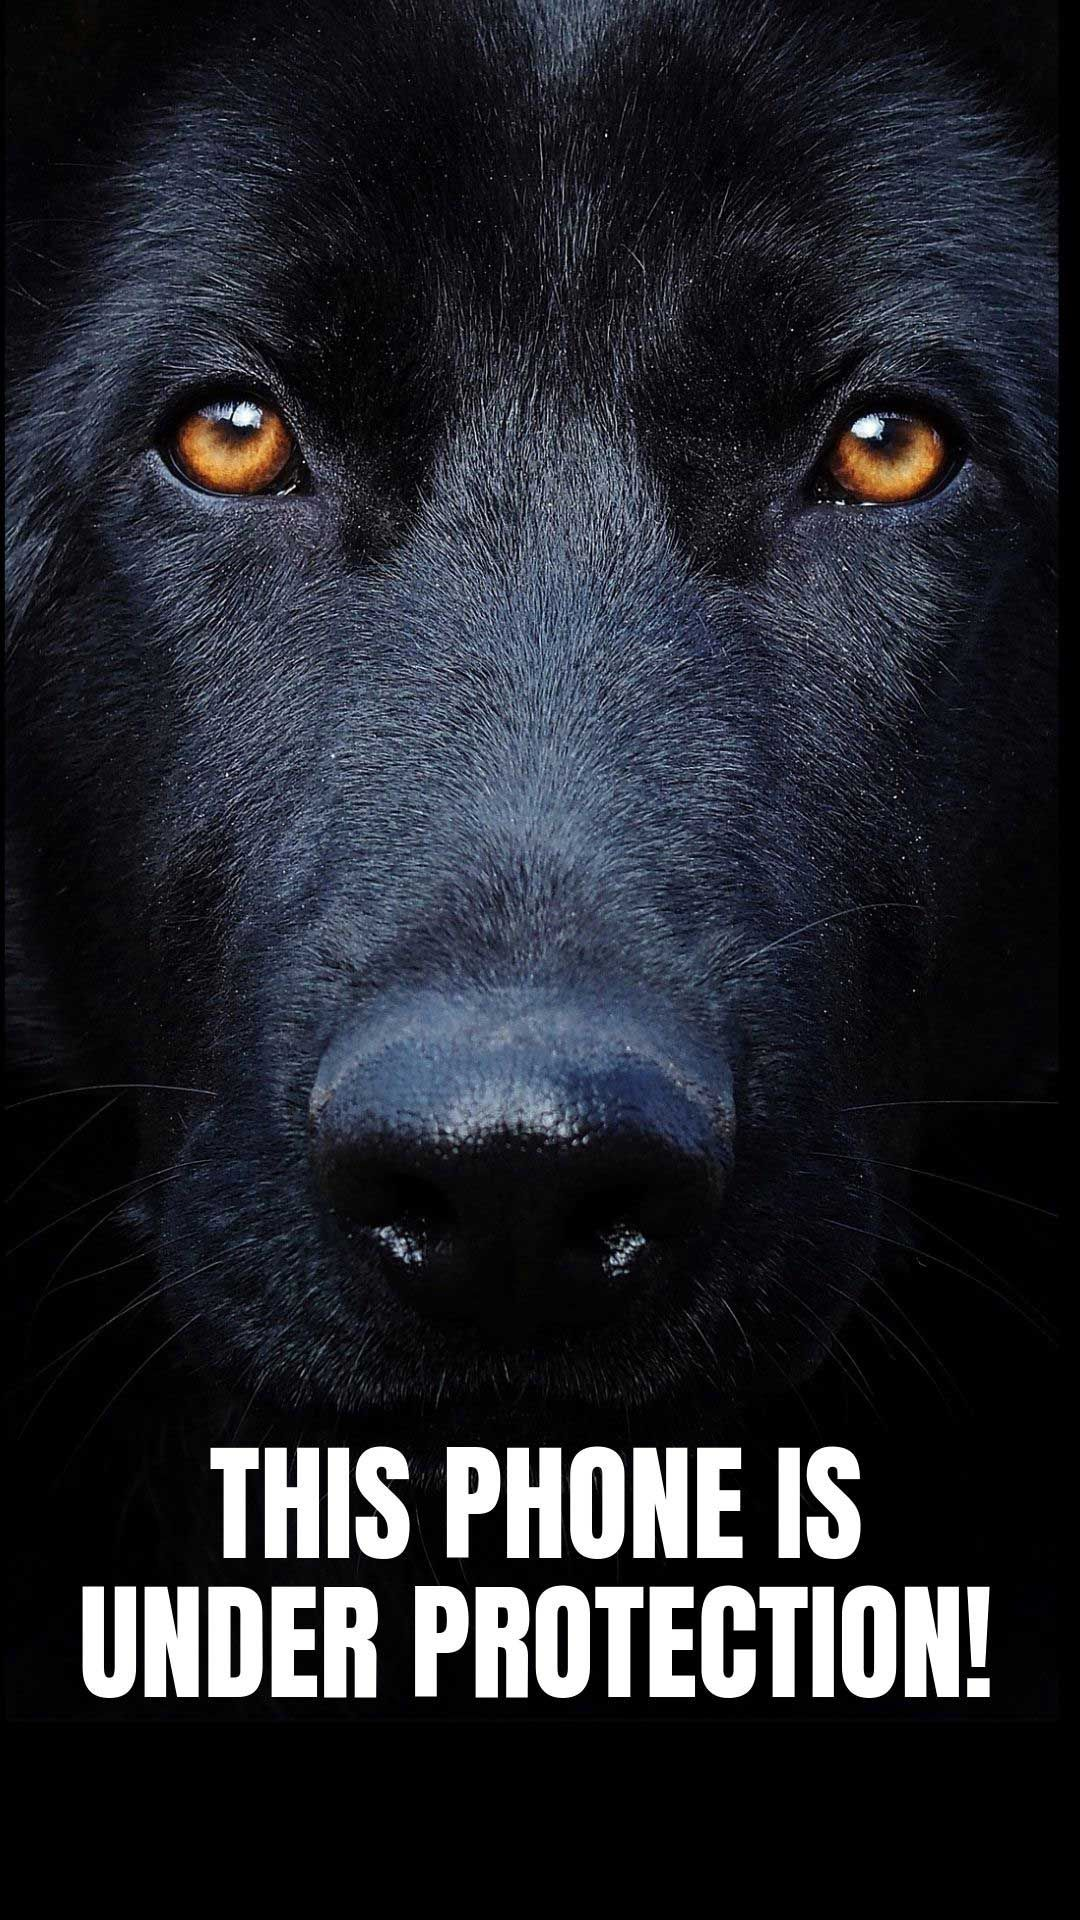 20 Free Dog Wallpapers I Phone And Android 20 Hd Sized Homescreen Wallpaper Dog Pictures Dog Wallpaper Dog Wallpaper Iphone Dog Background